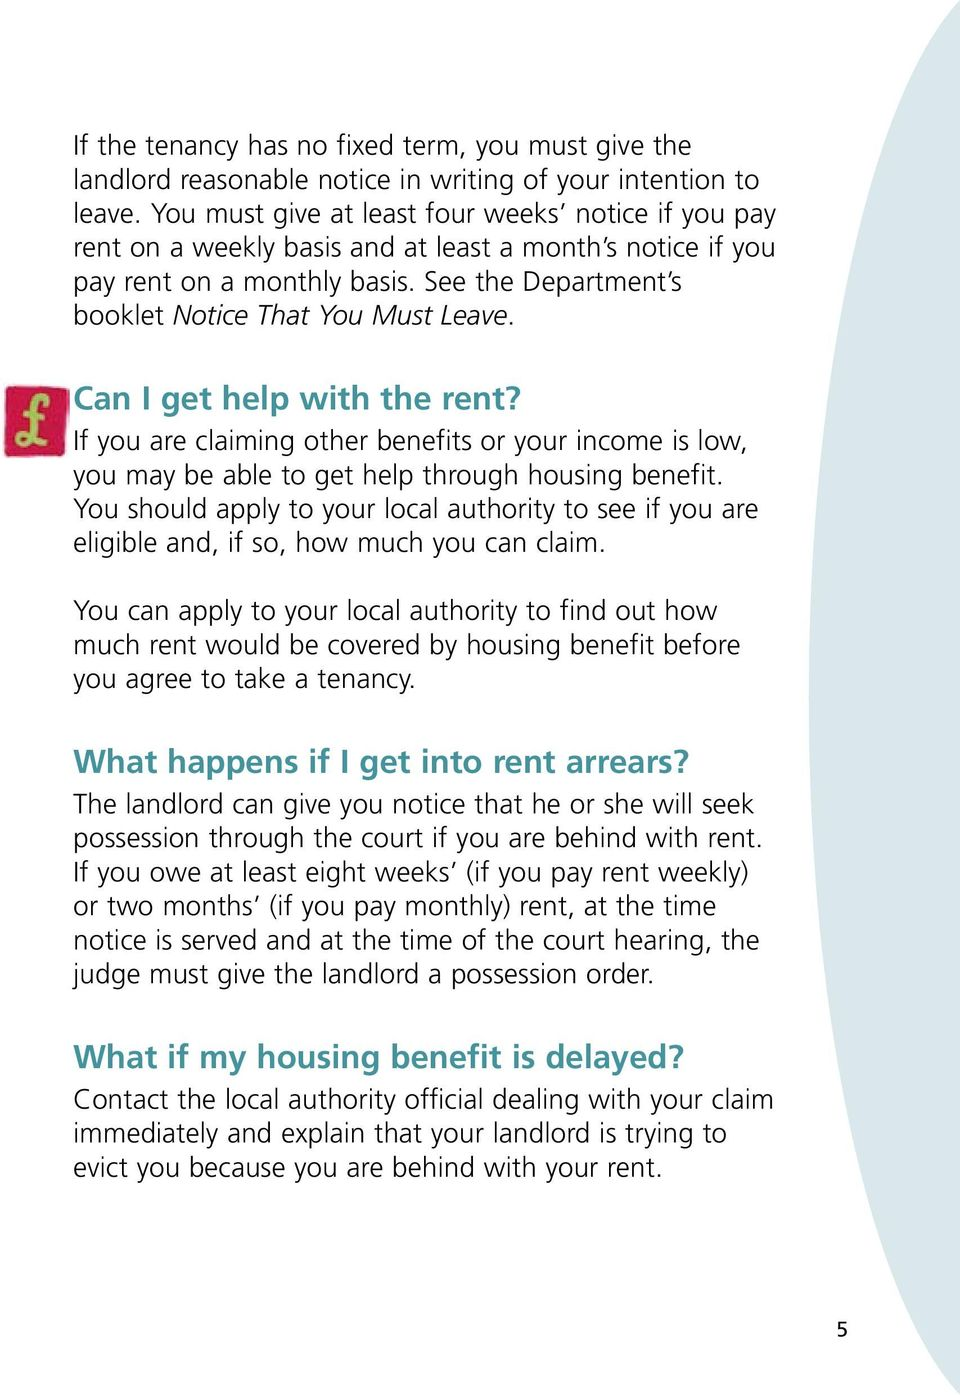 Can I get help with the rent? If you are claiming other benefits or your income is low, you may be able to get help through housing benefit.